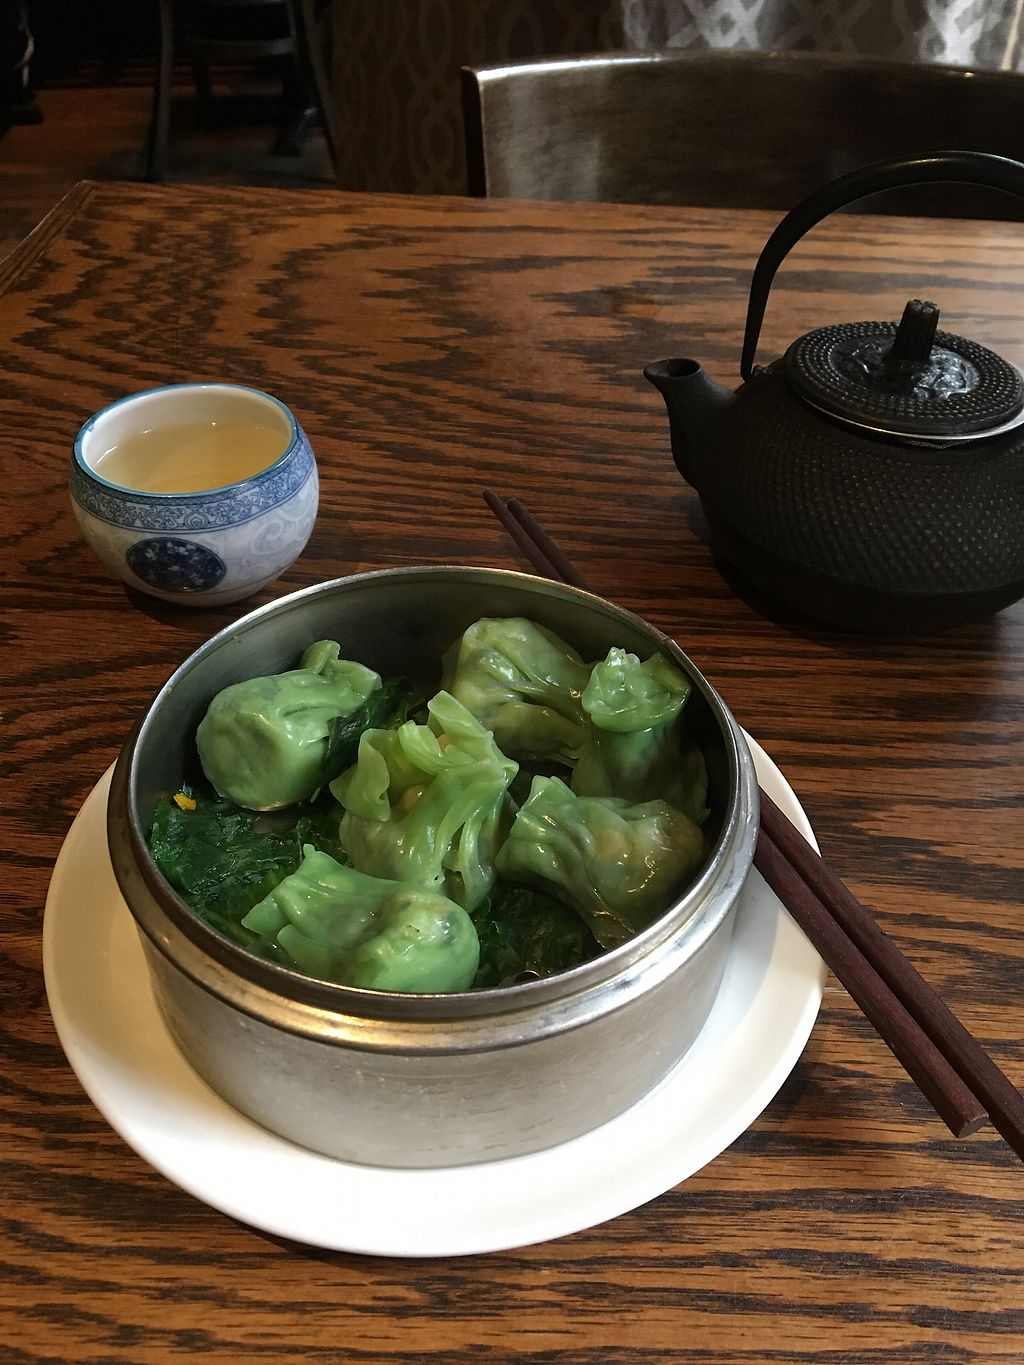 """Photo of LuAnne's Wild Ginger  by <a href=""""/members/profile/JJones315"""">JJones315</a> <br/>Veggie shu mai and Greetings jasmine tea  <br/> February 6, 2018  - <a href='/contact/abuse/image/5642/355706'>Report</a>"""